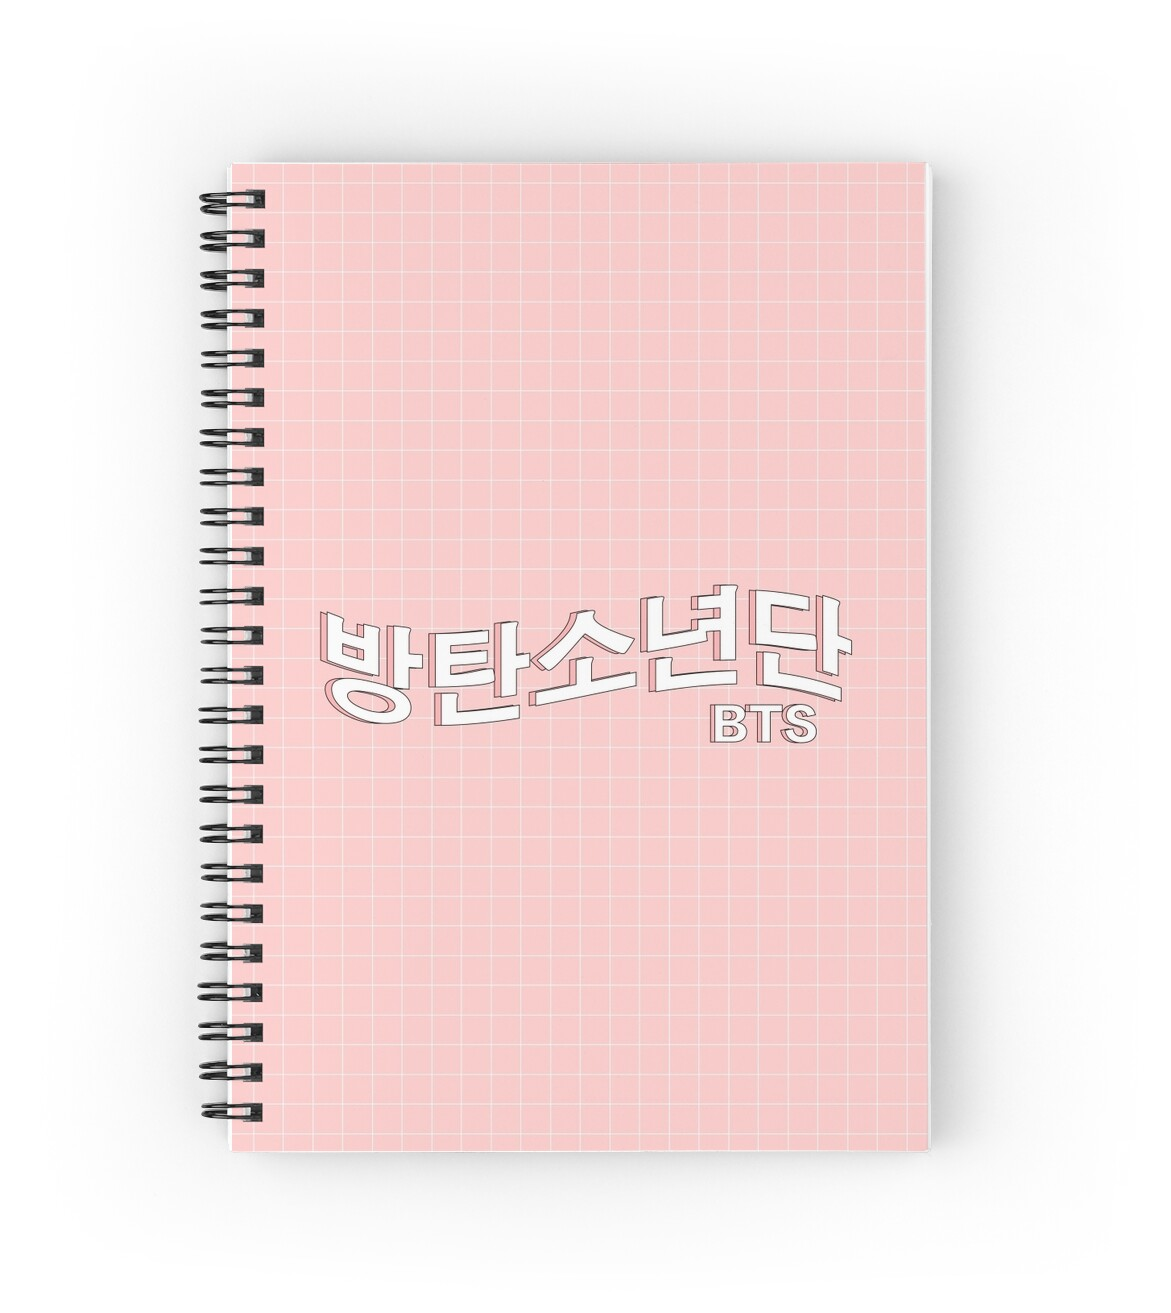 Quot Bts Aesthetic Quot Spiral Notebooks By Namjoonstrash Redbubble